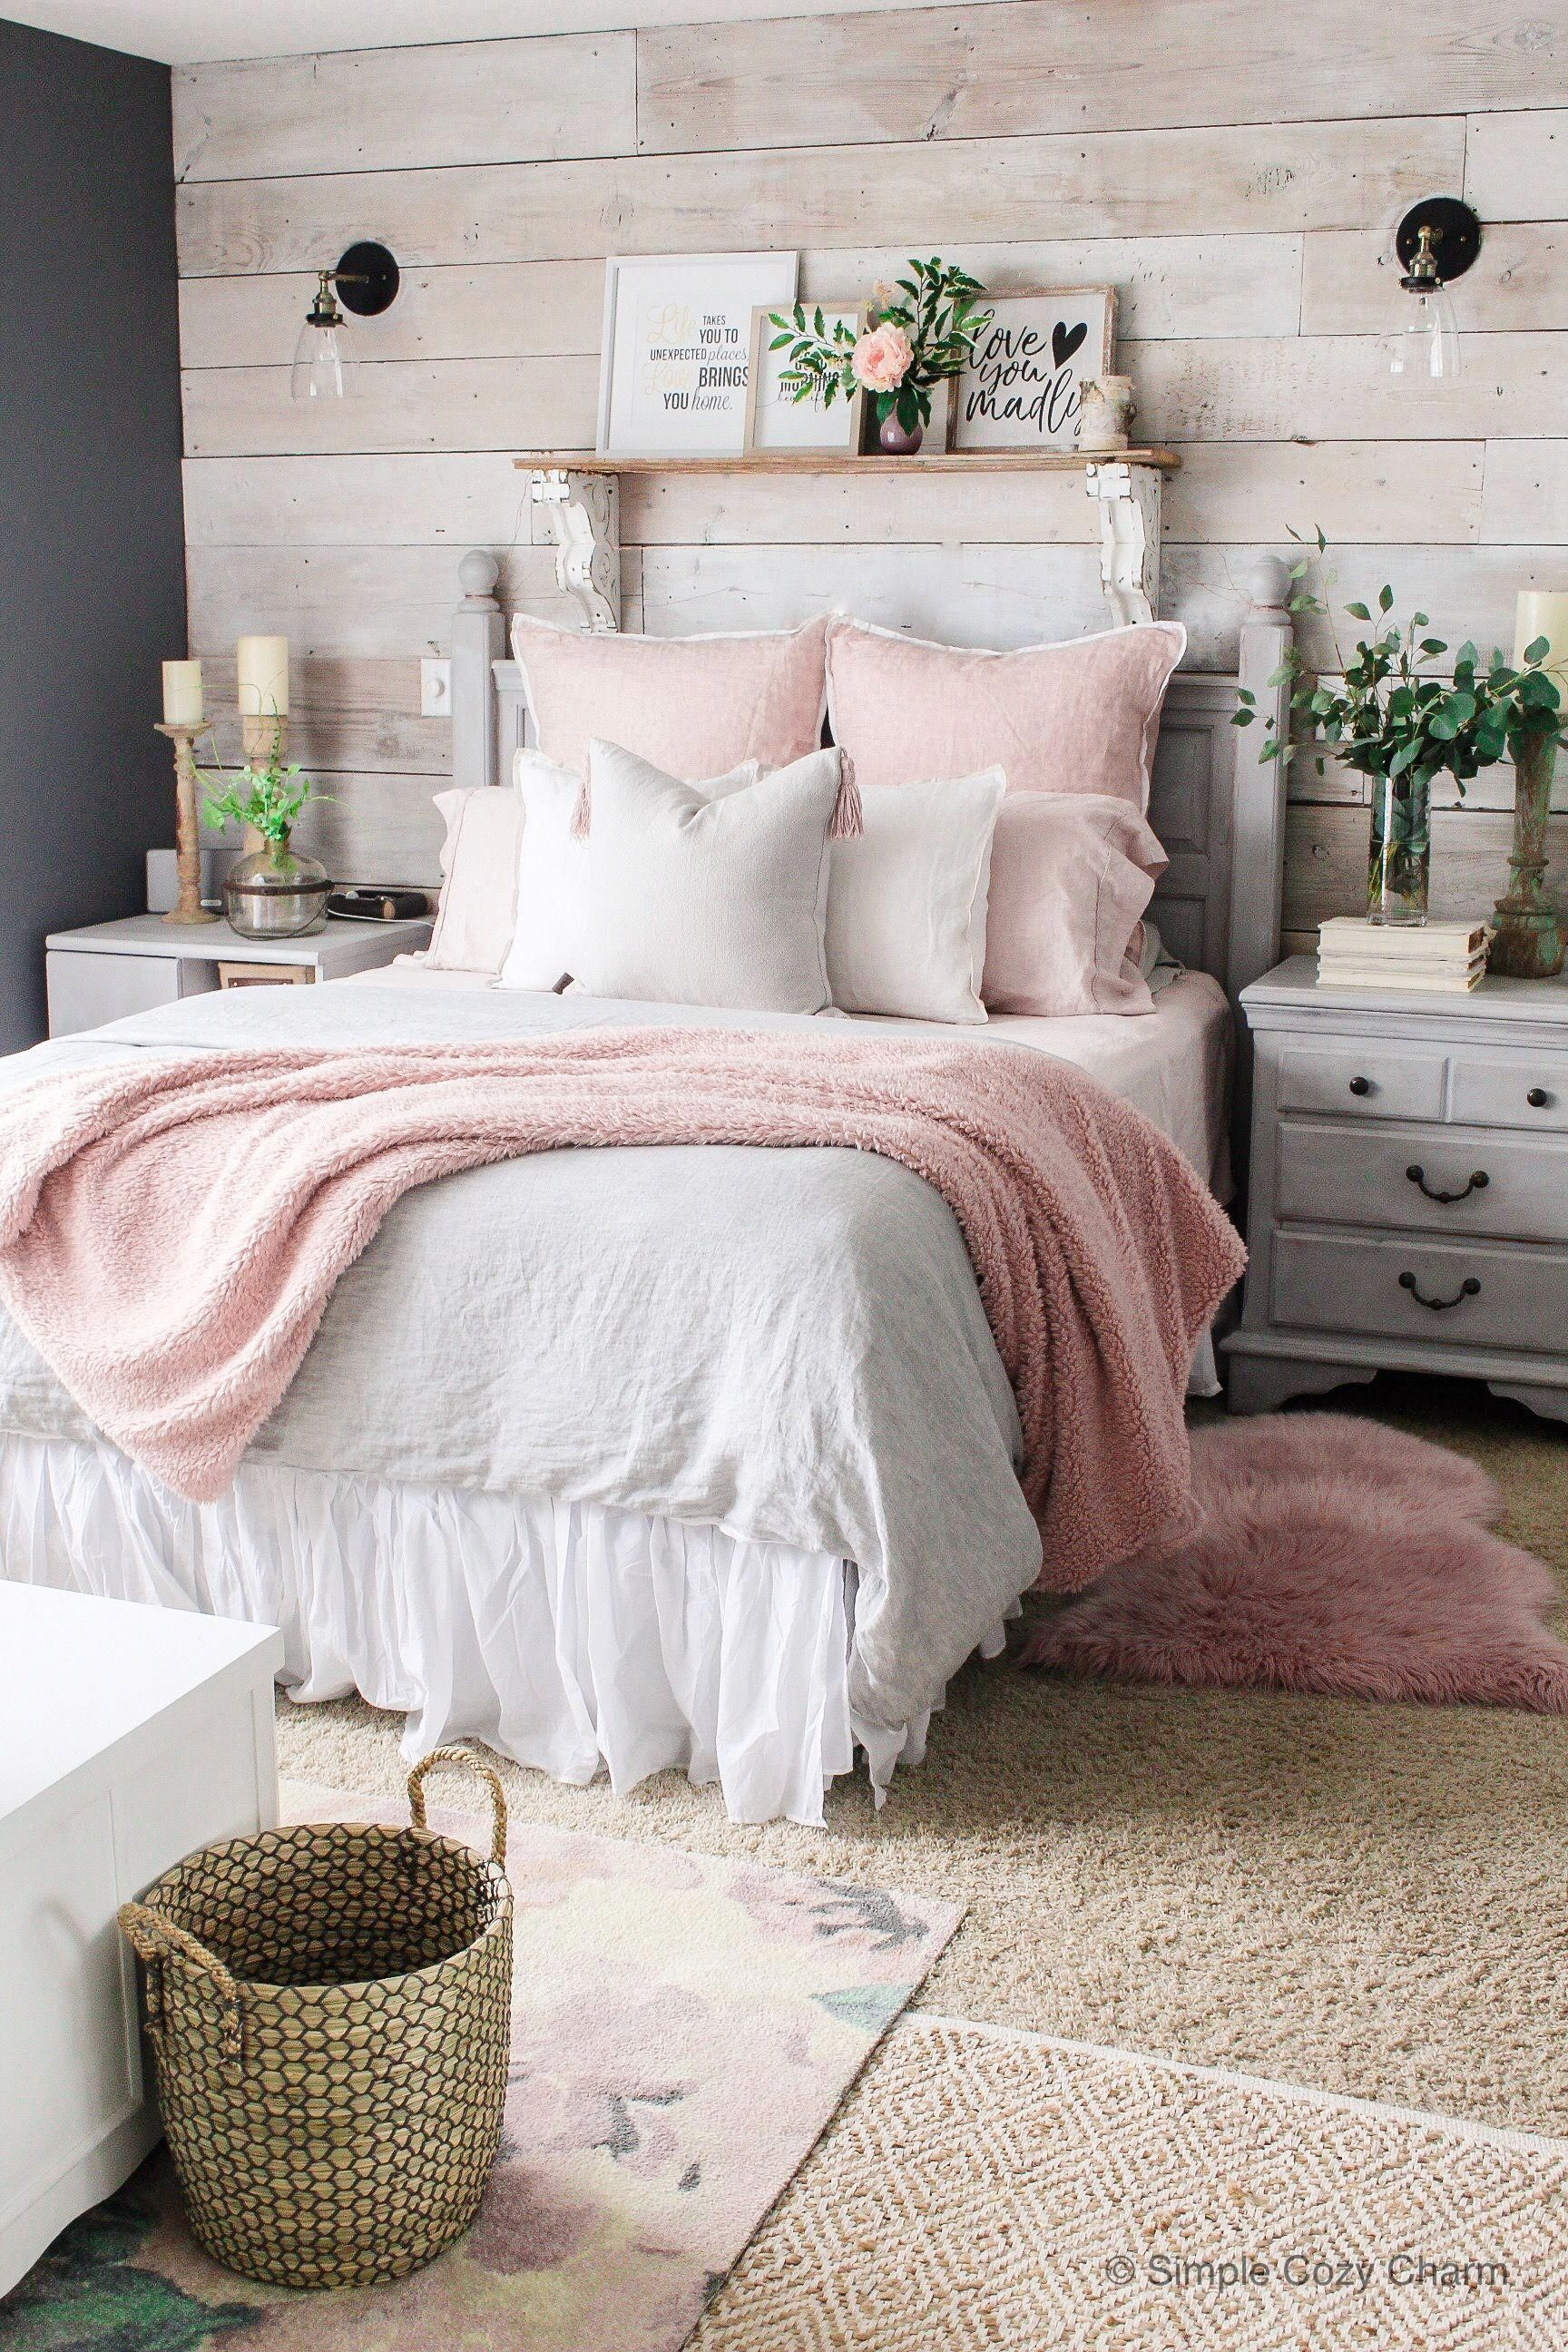 Mid-Winter Bedroom Facelift - Simple Cozy Charm